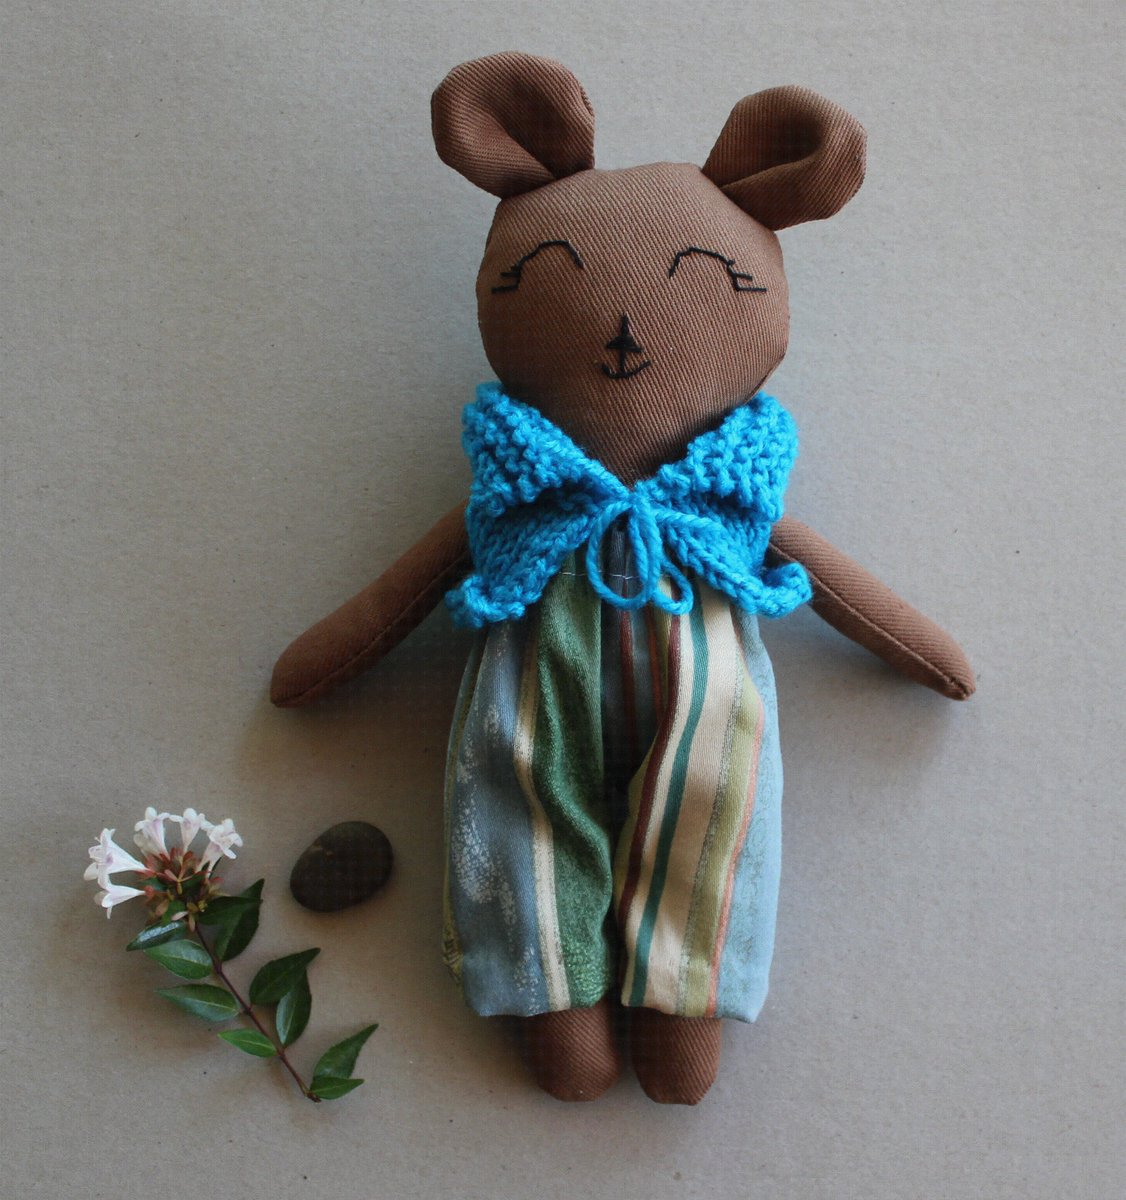 Handmade teddy, Teddy , Teddy doll , Nursery decor , Baby toy , Teddy bear , Soft toy , Bear doll , Girl soft doll http://tuppu.net/afccfe80  #KennaInAfrica #Handmade #Etsy #TeddyDoll